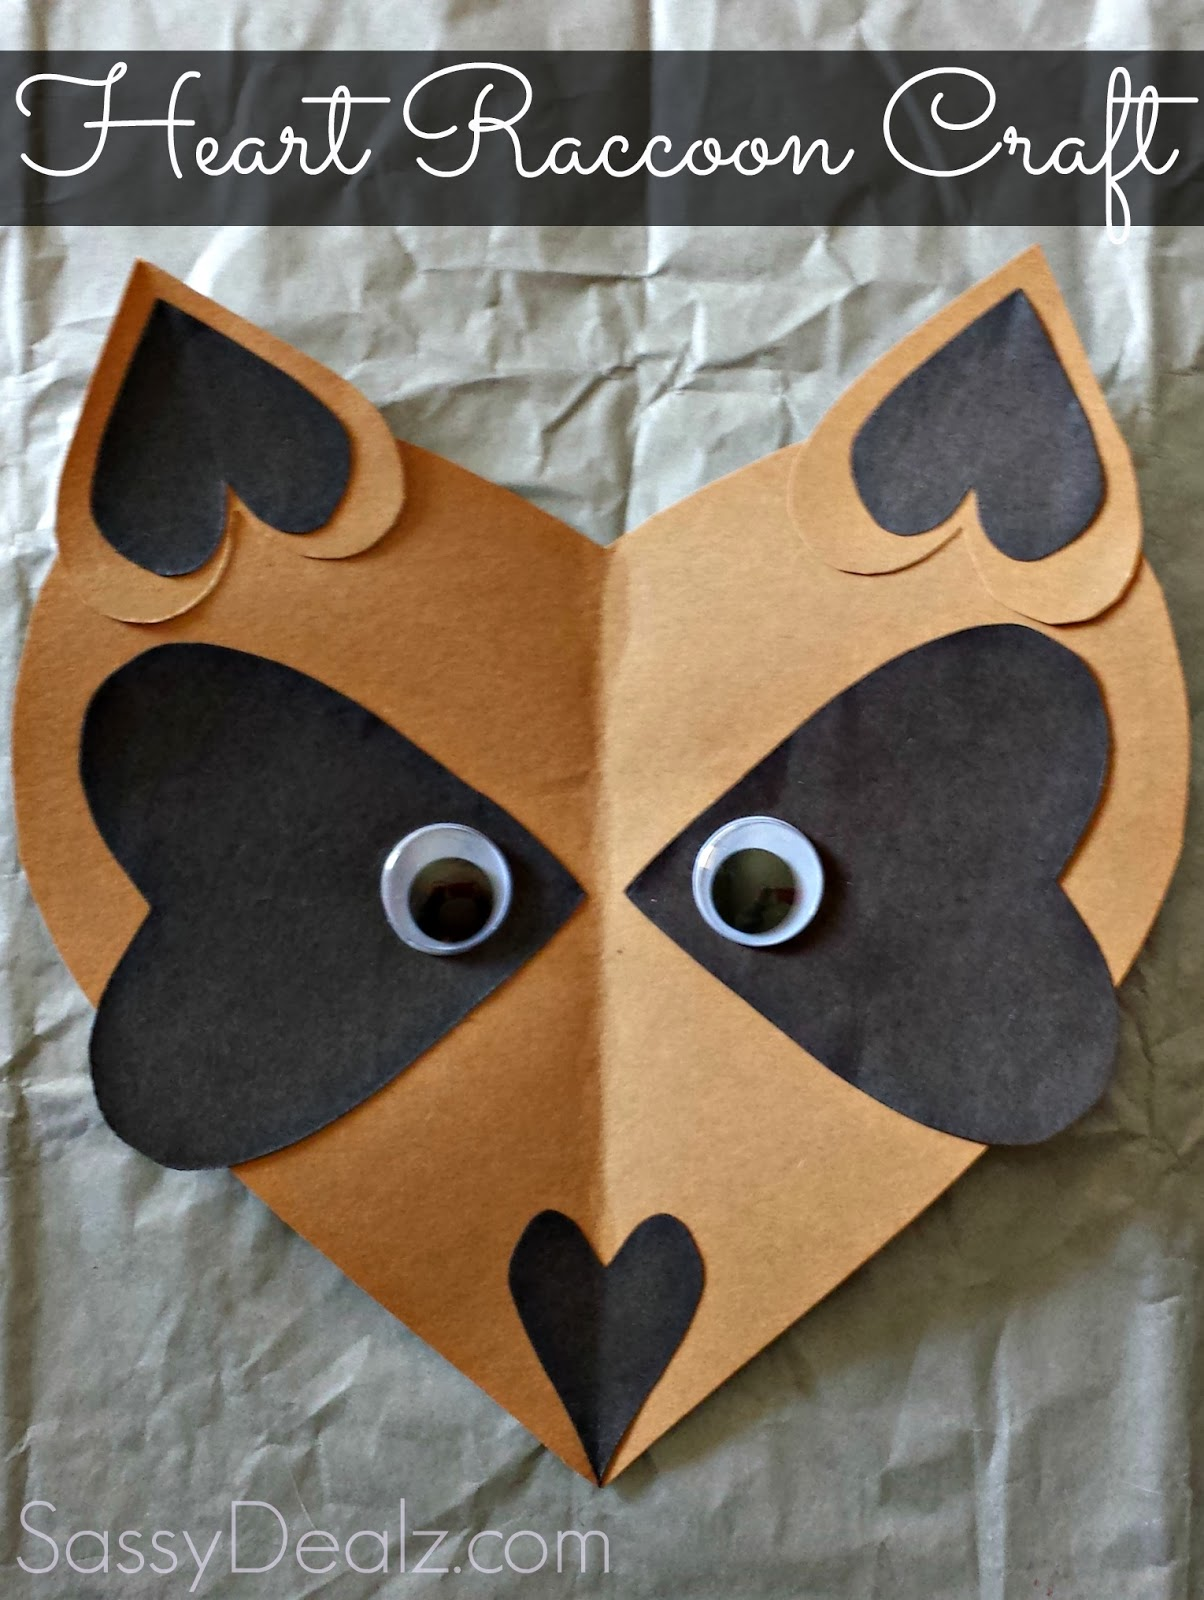 Paper Heart Raccoon Craft For Kids - Crafty Morning